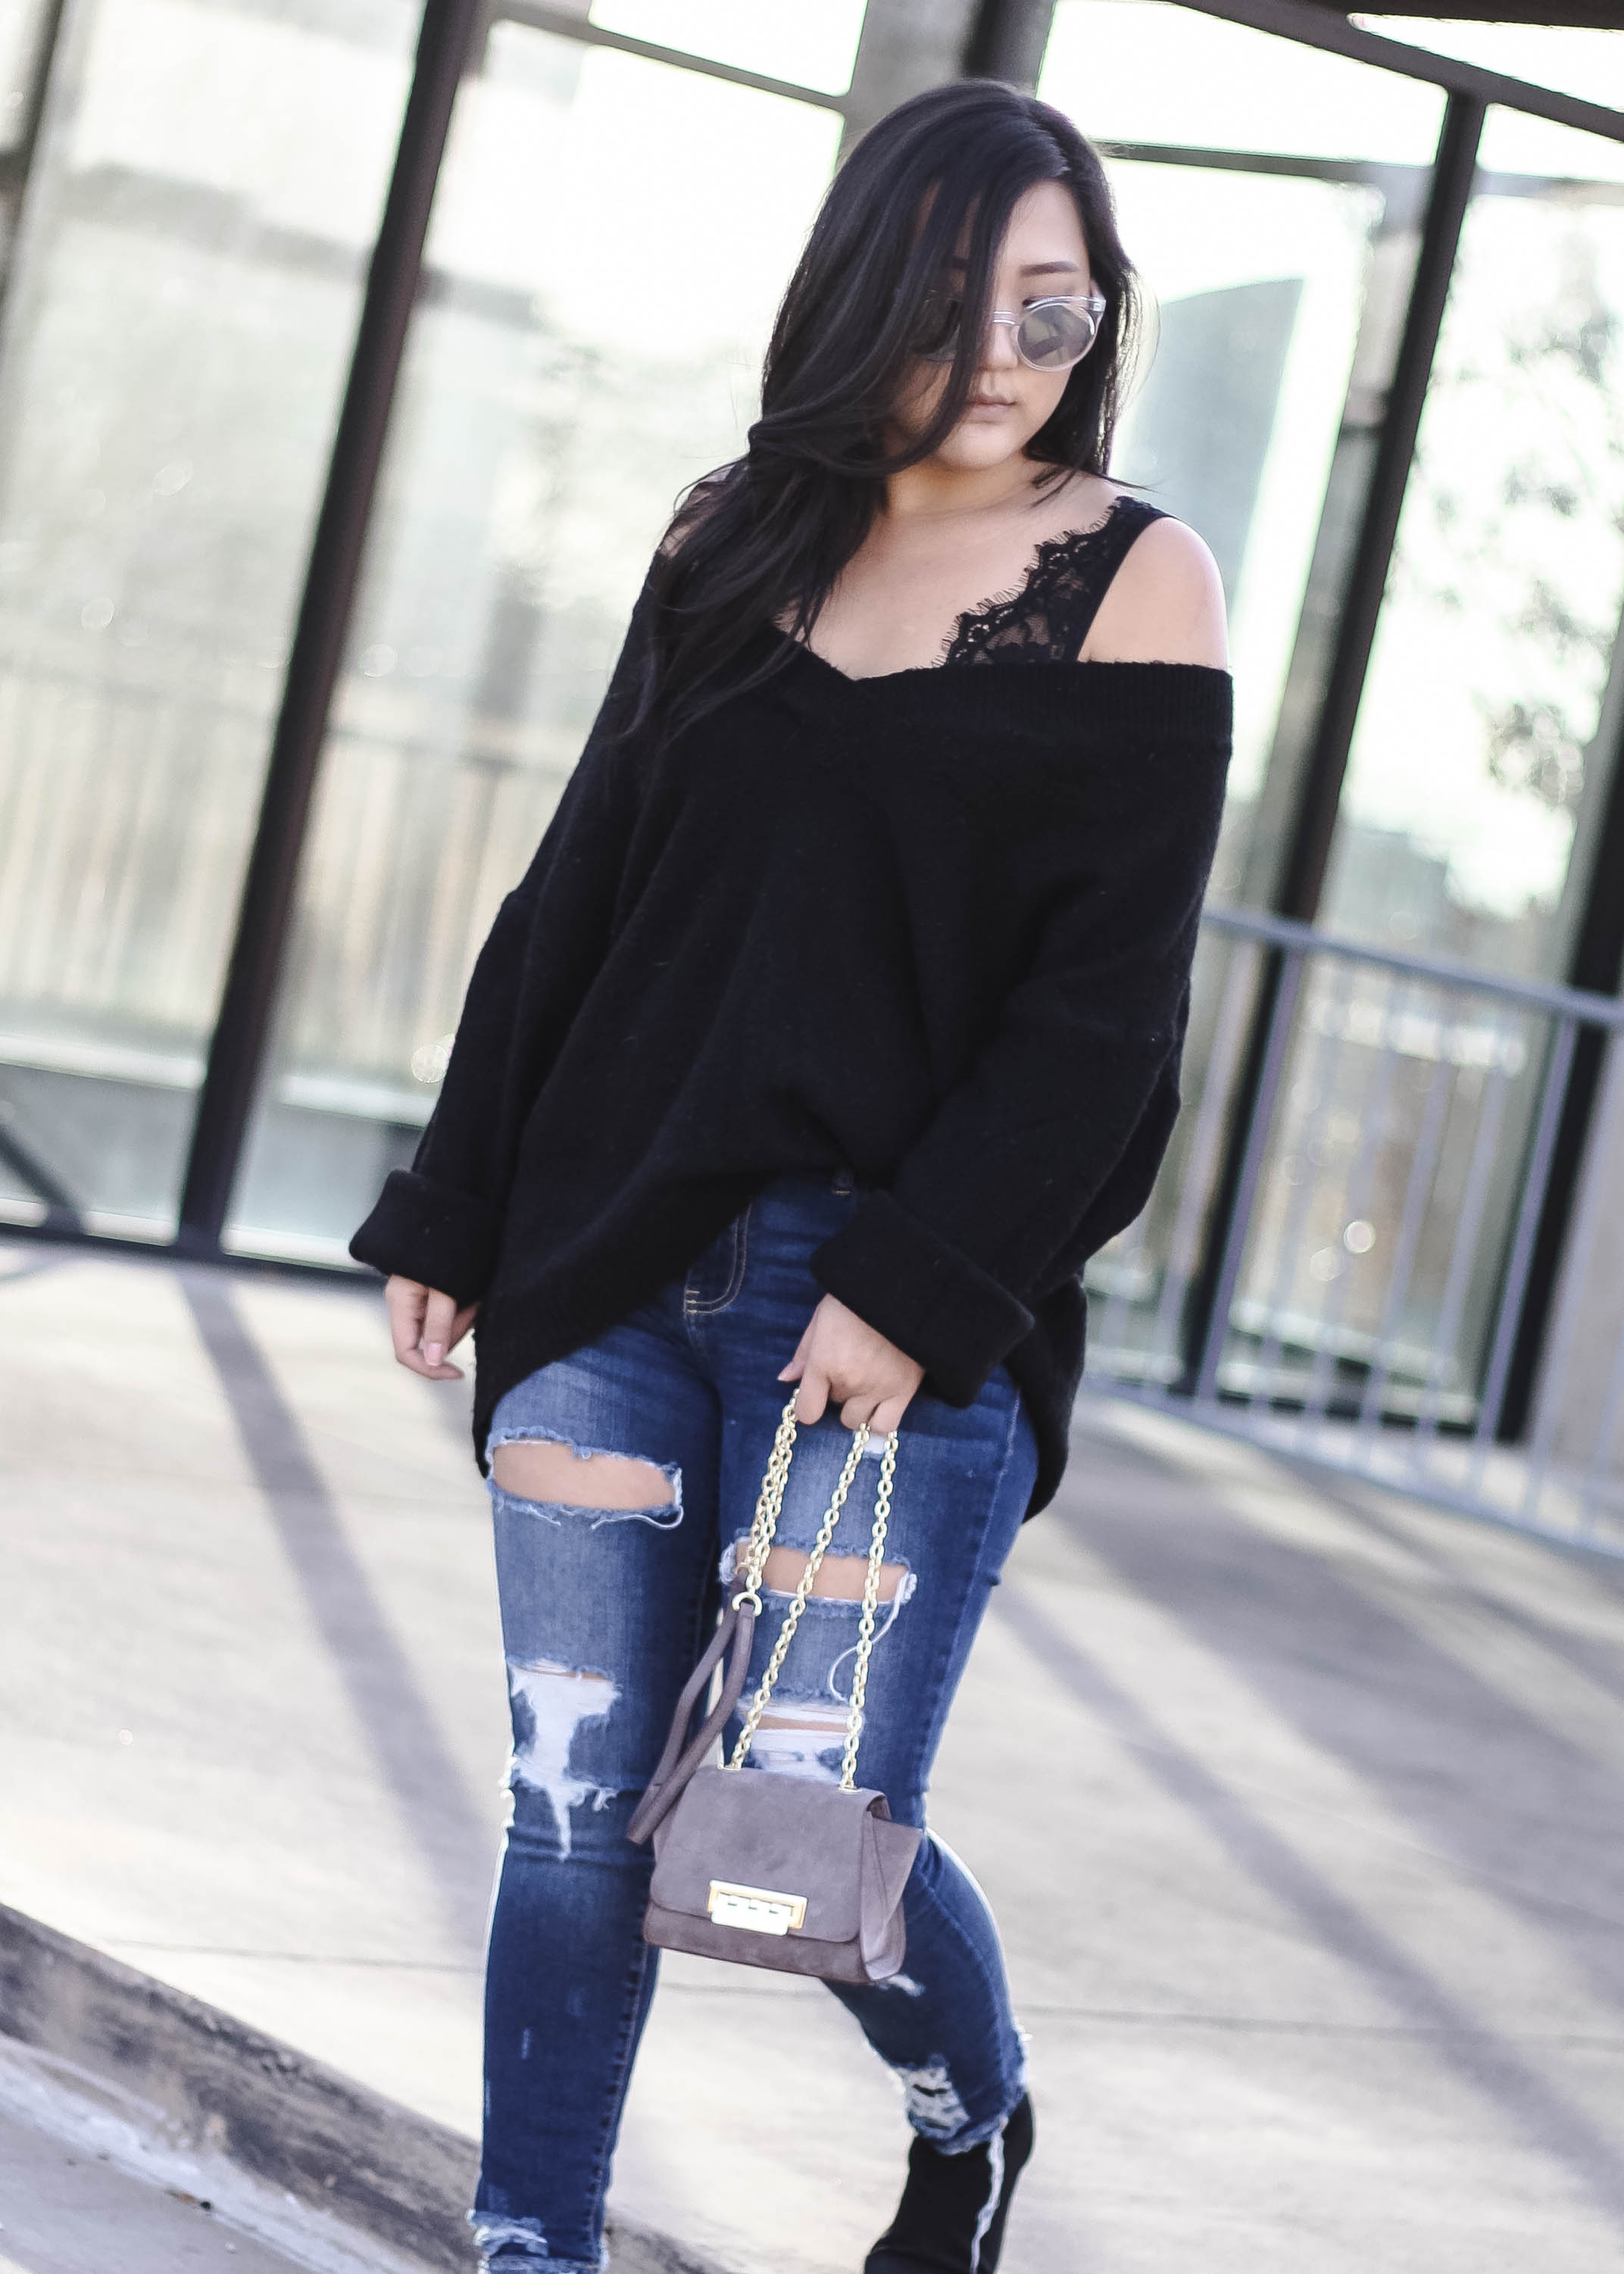 Image of Inthegreyblog.com Denim Style in Ripped Denim Jeans, V-neck Sweater, Clear Round Quay Australia Sunglasses, Black Lace Bralette and Zac Posen Mini Eartha Iconic Crossbody bag Outfit